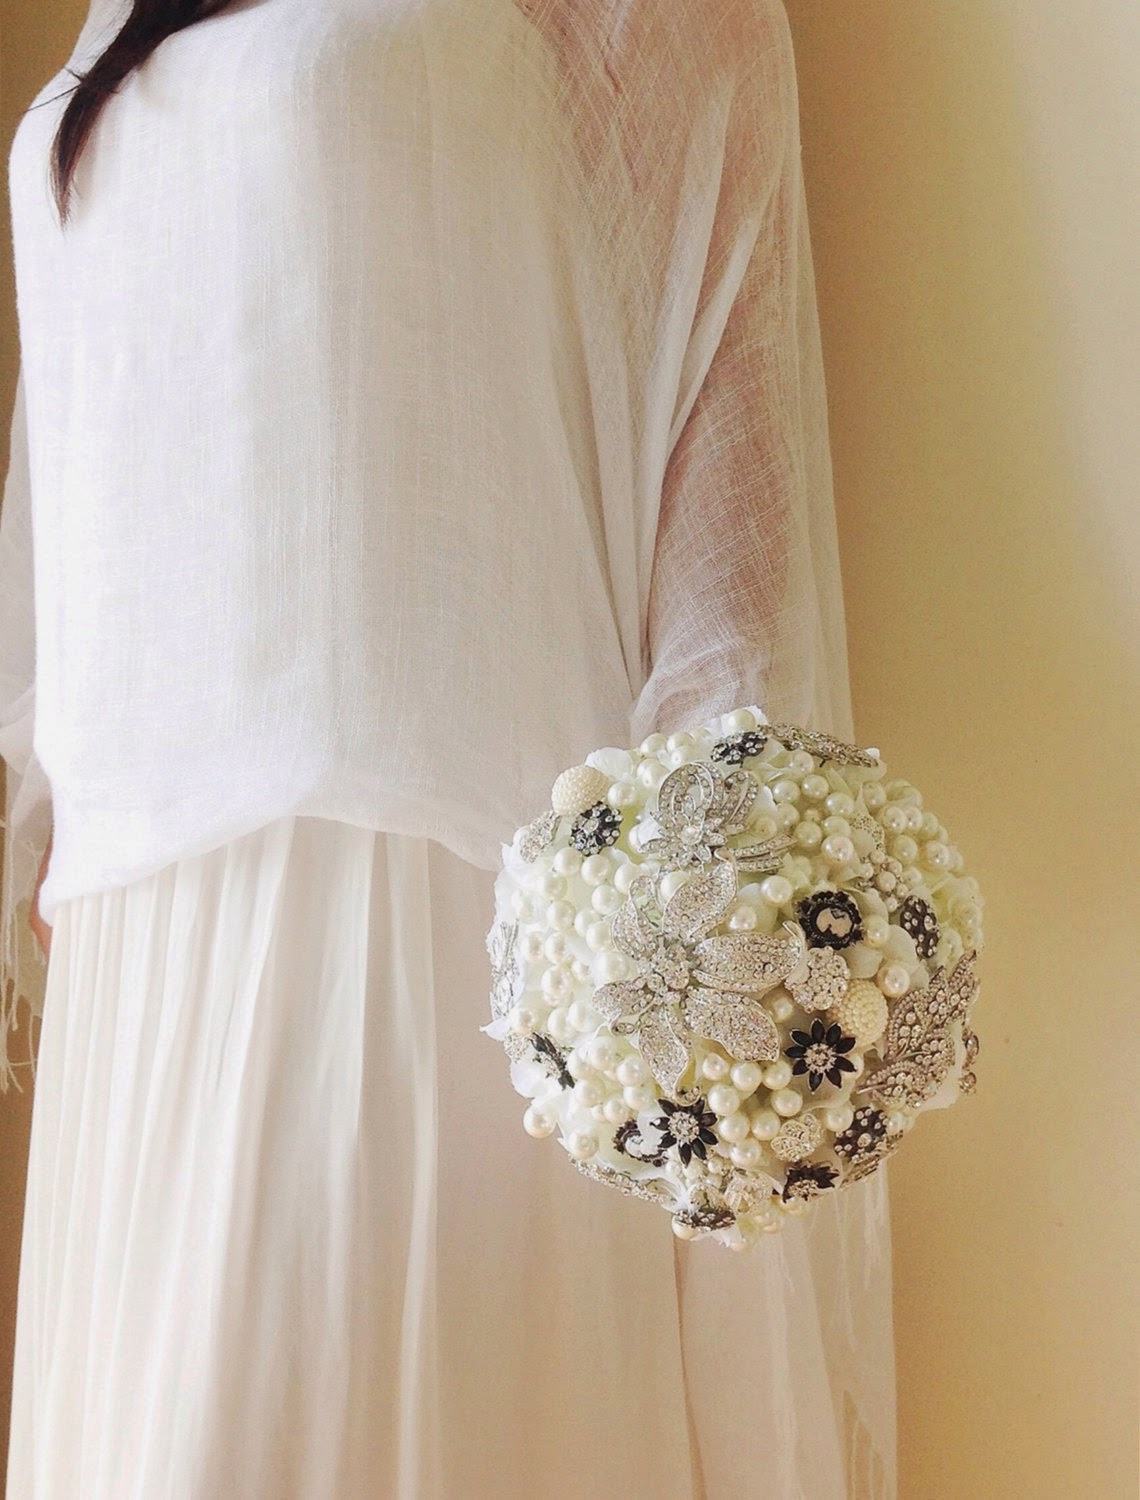 Brooch bouquet with cameos